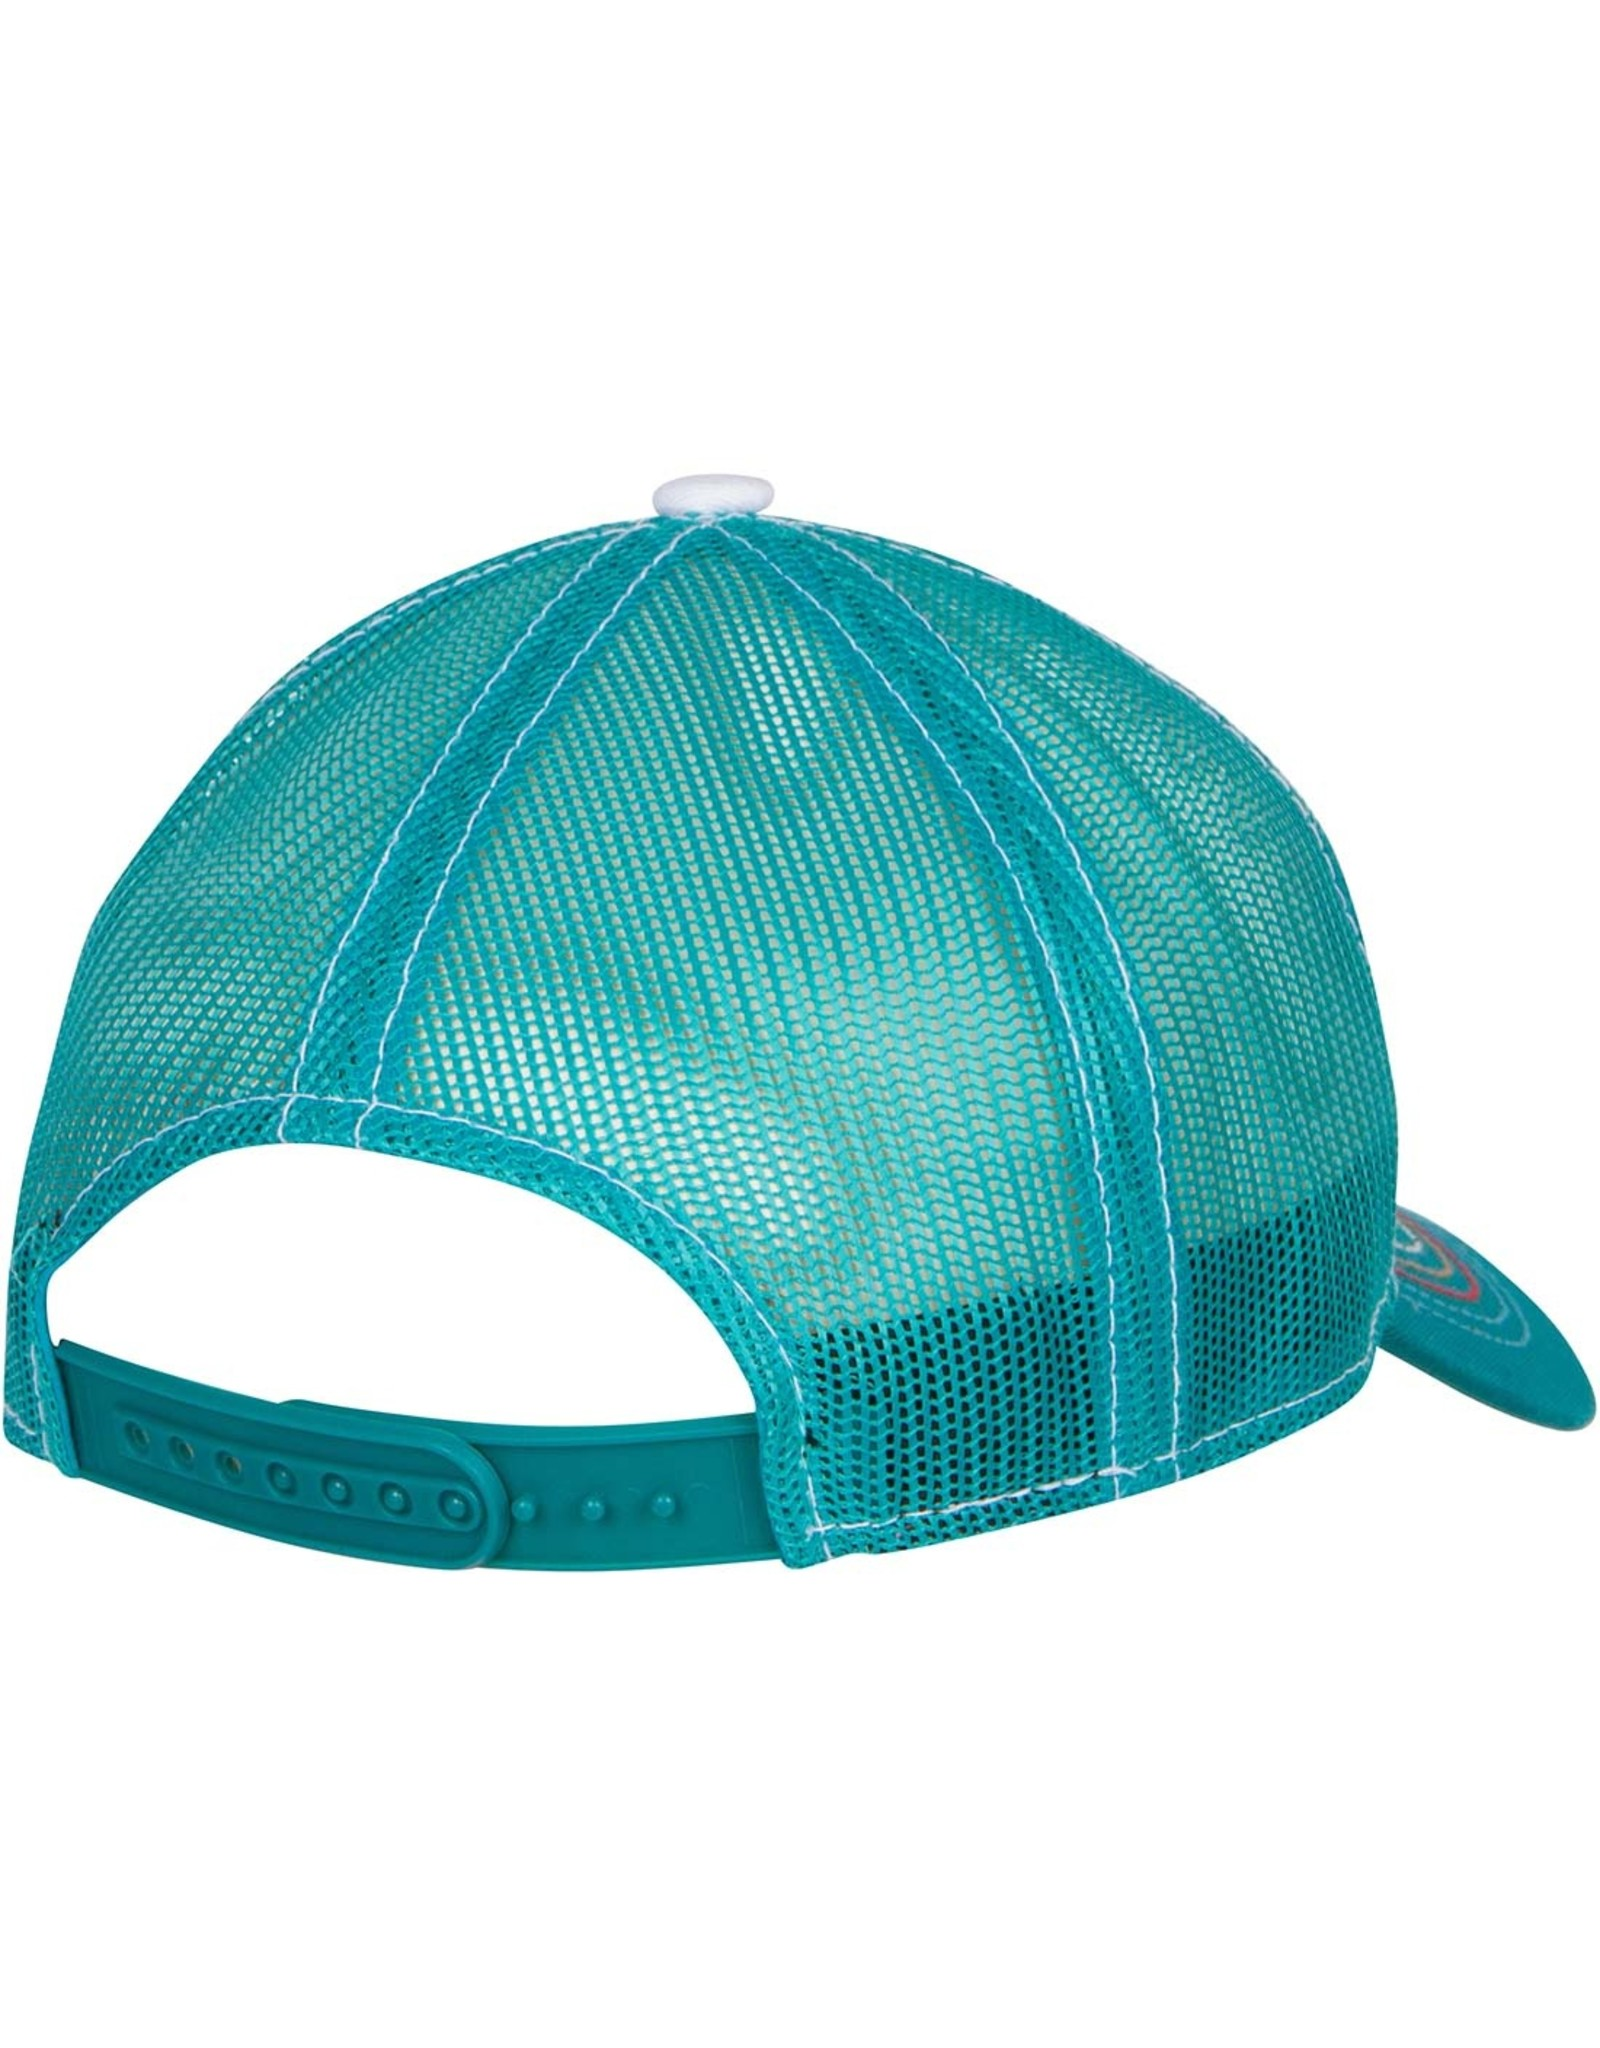 CA Republic Teal Trucker Hat